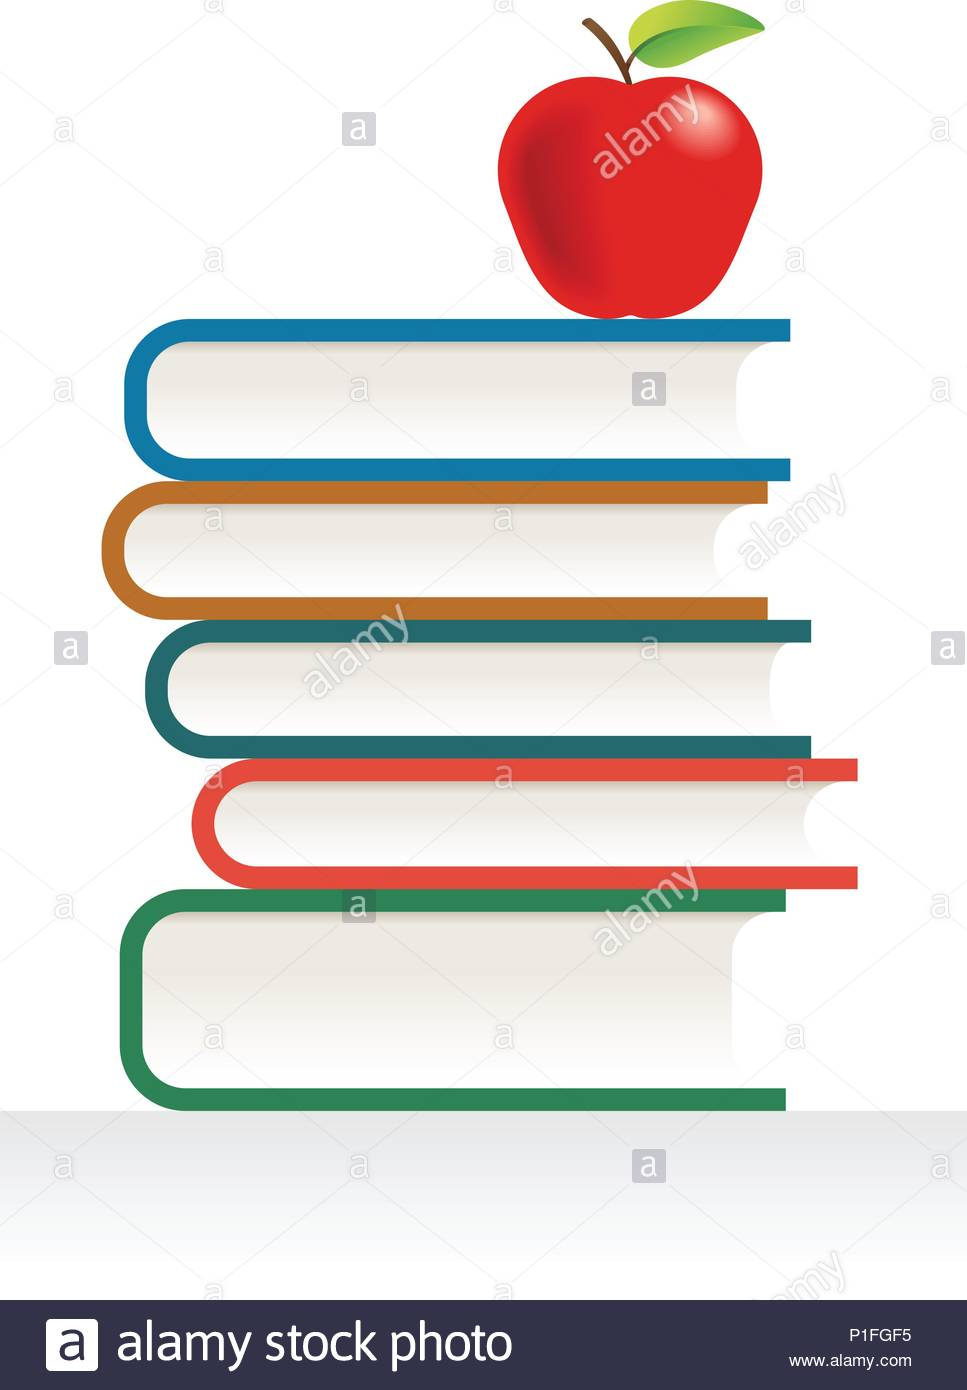 Apple And Books. Global colors used Stock Vector Art & Illustration ...